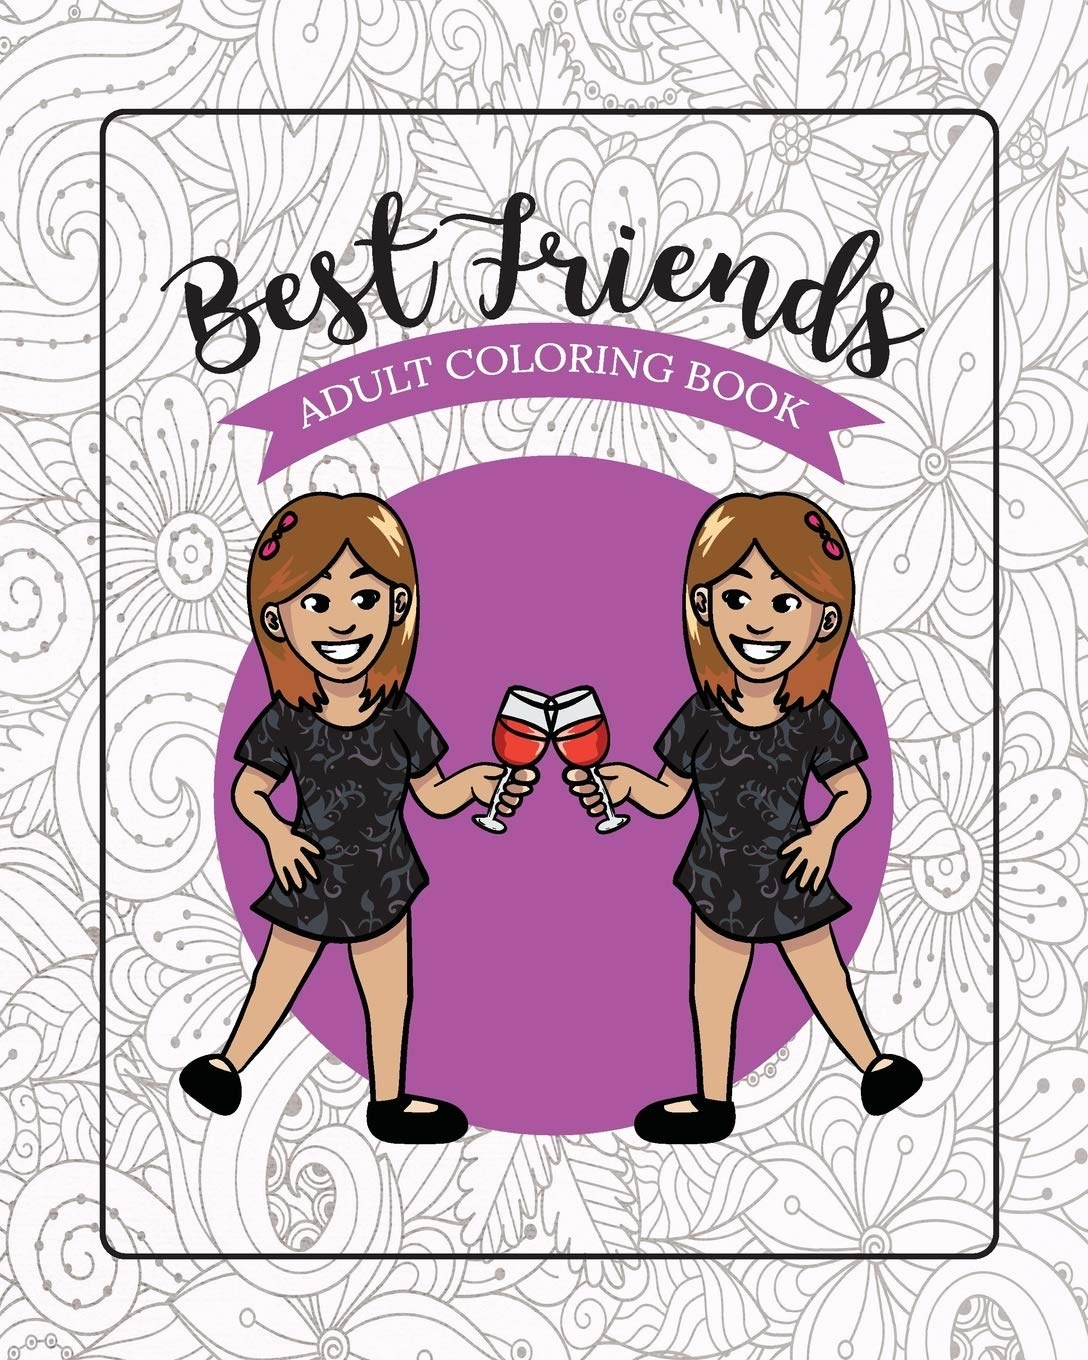 A colouring book cover of two people holding wine glasses